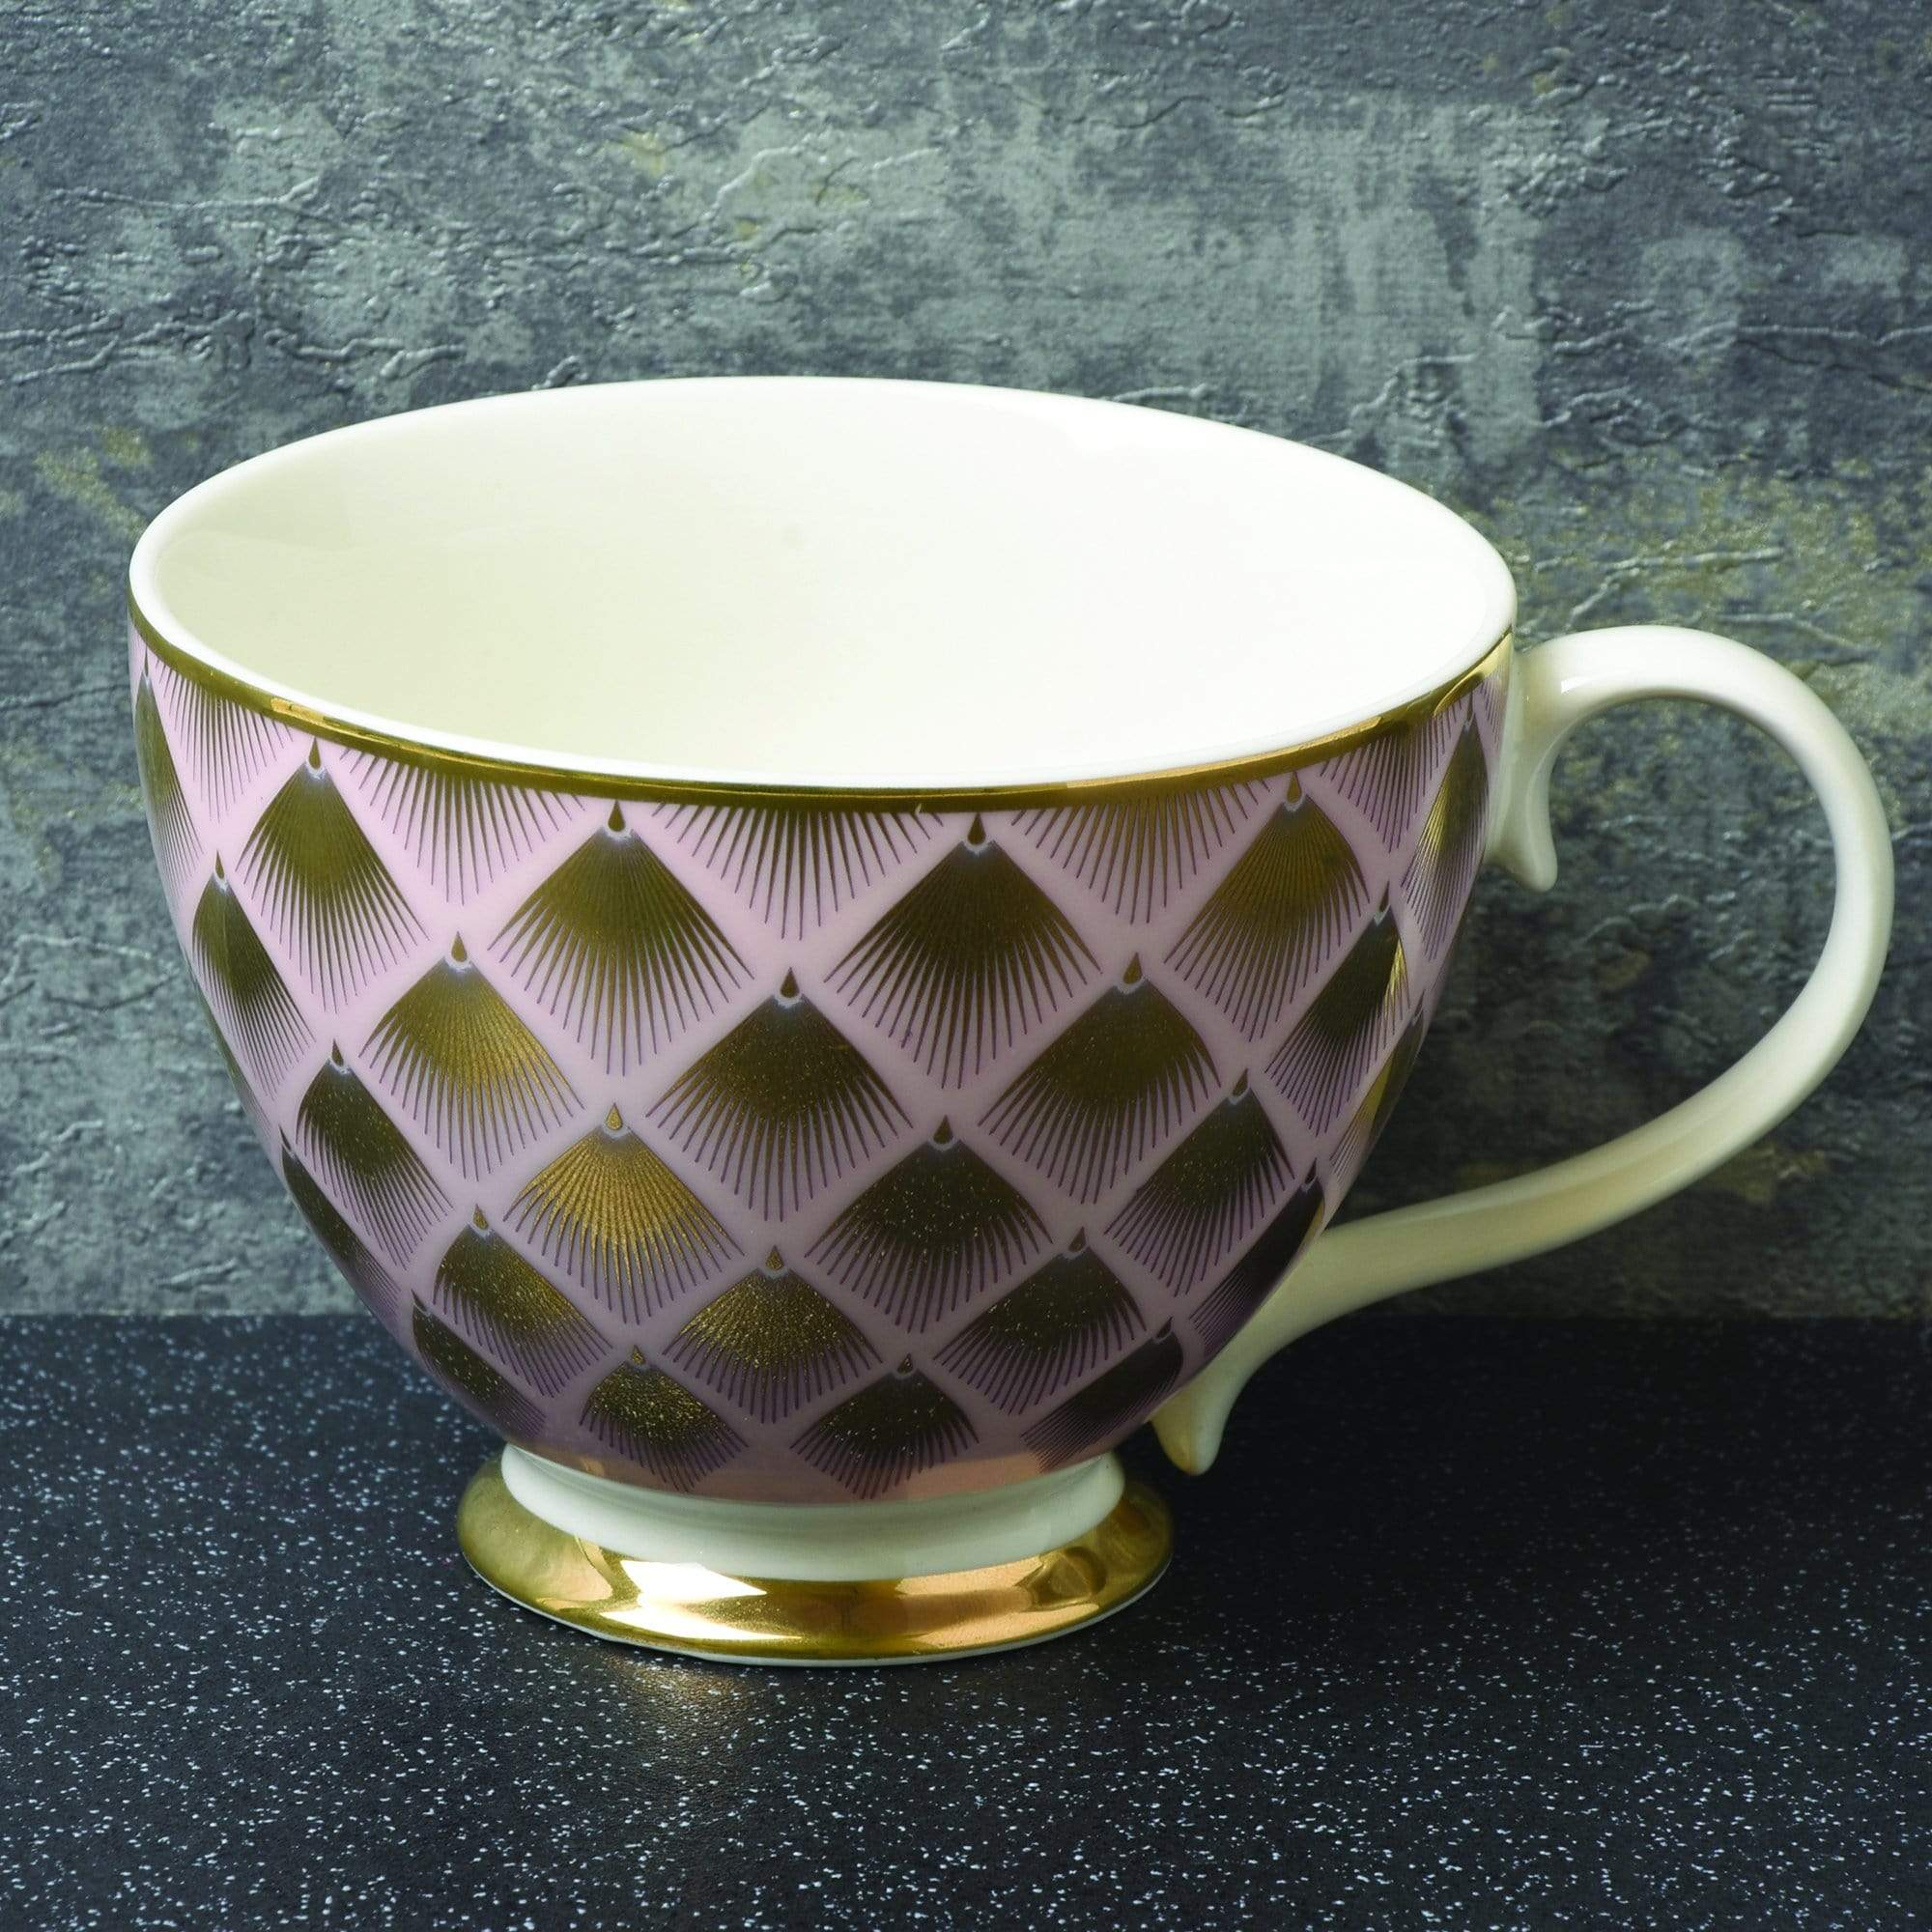 Candlelight Home Mug Footed Mug with Fan Design Gold 6.5cm 6PK